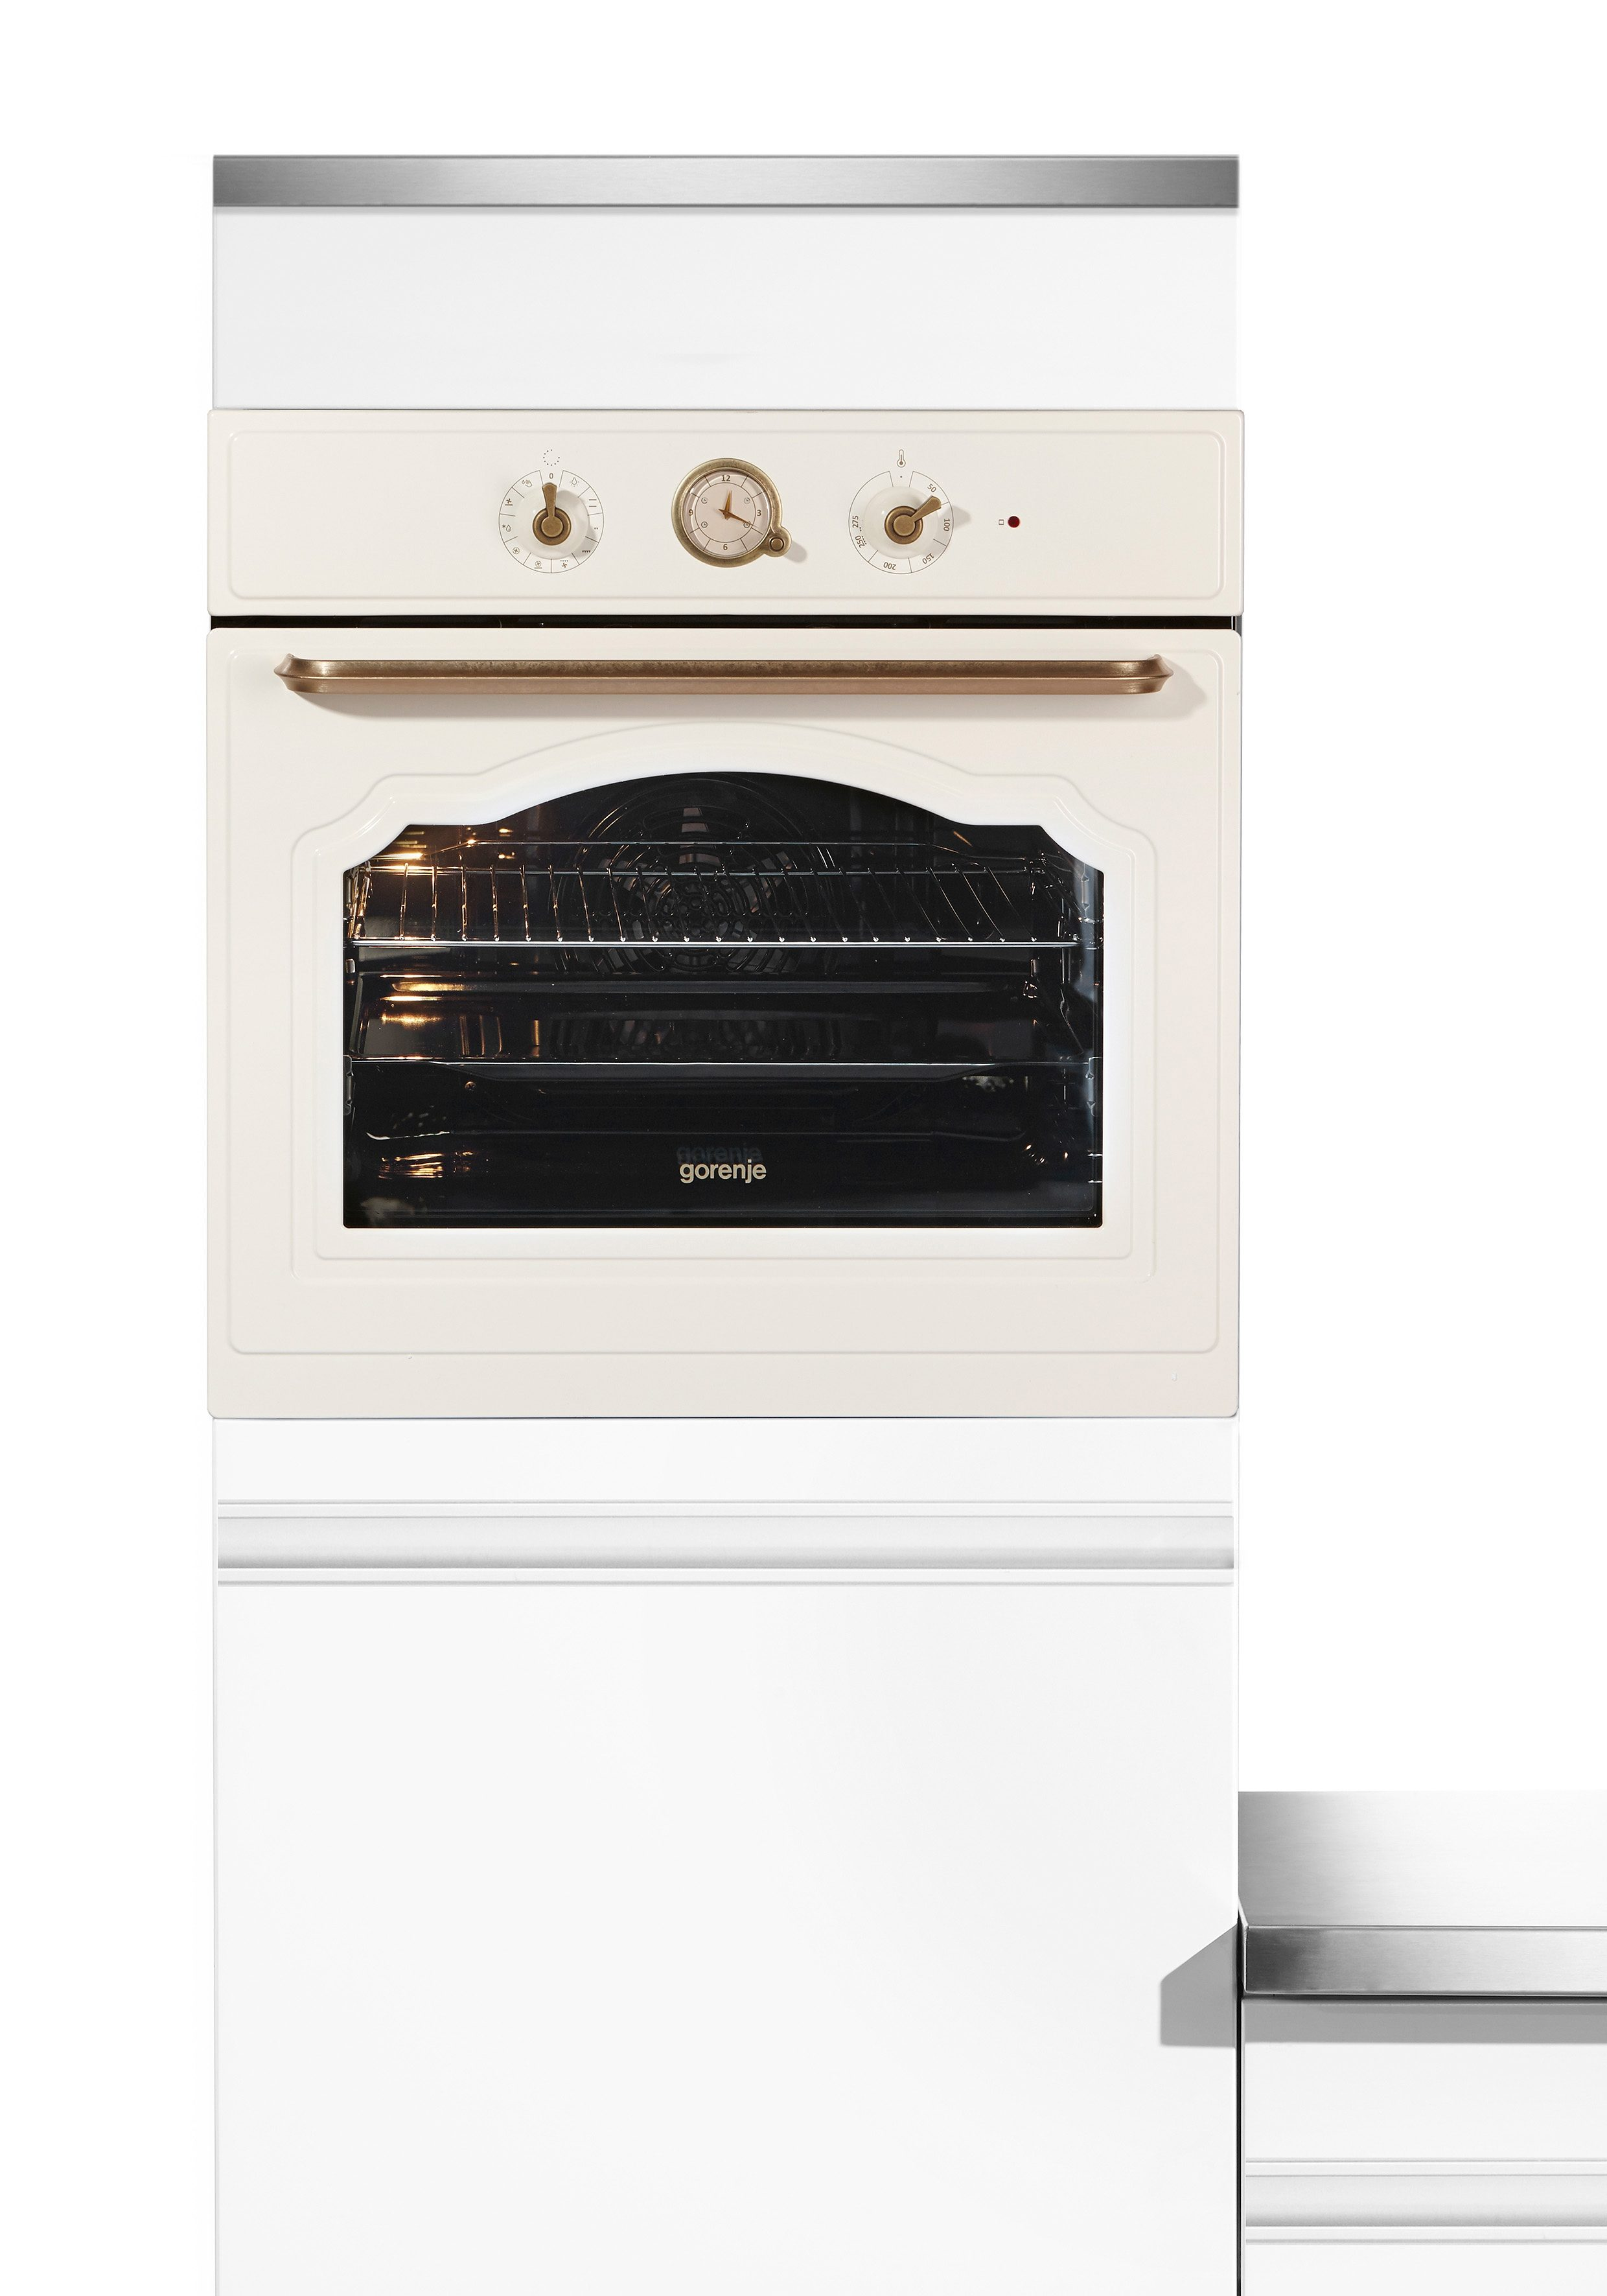 Leistung Backofen Backofen Leistung. Elegant Gorenje Mixed Basis Set Im